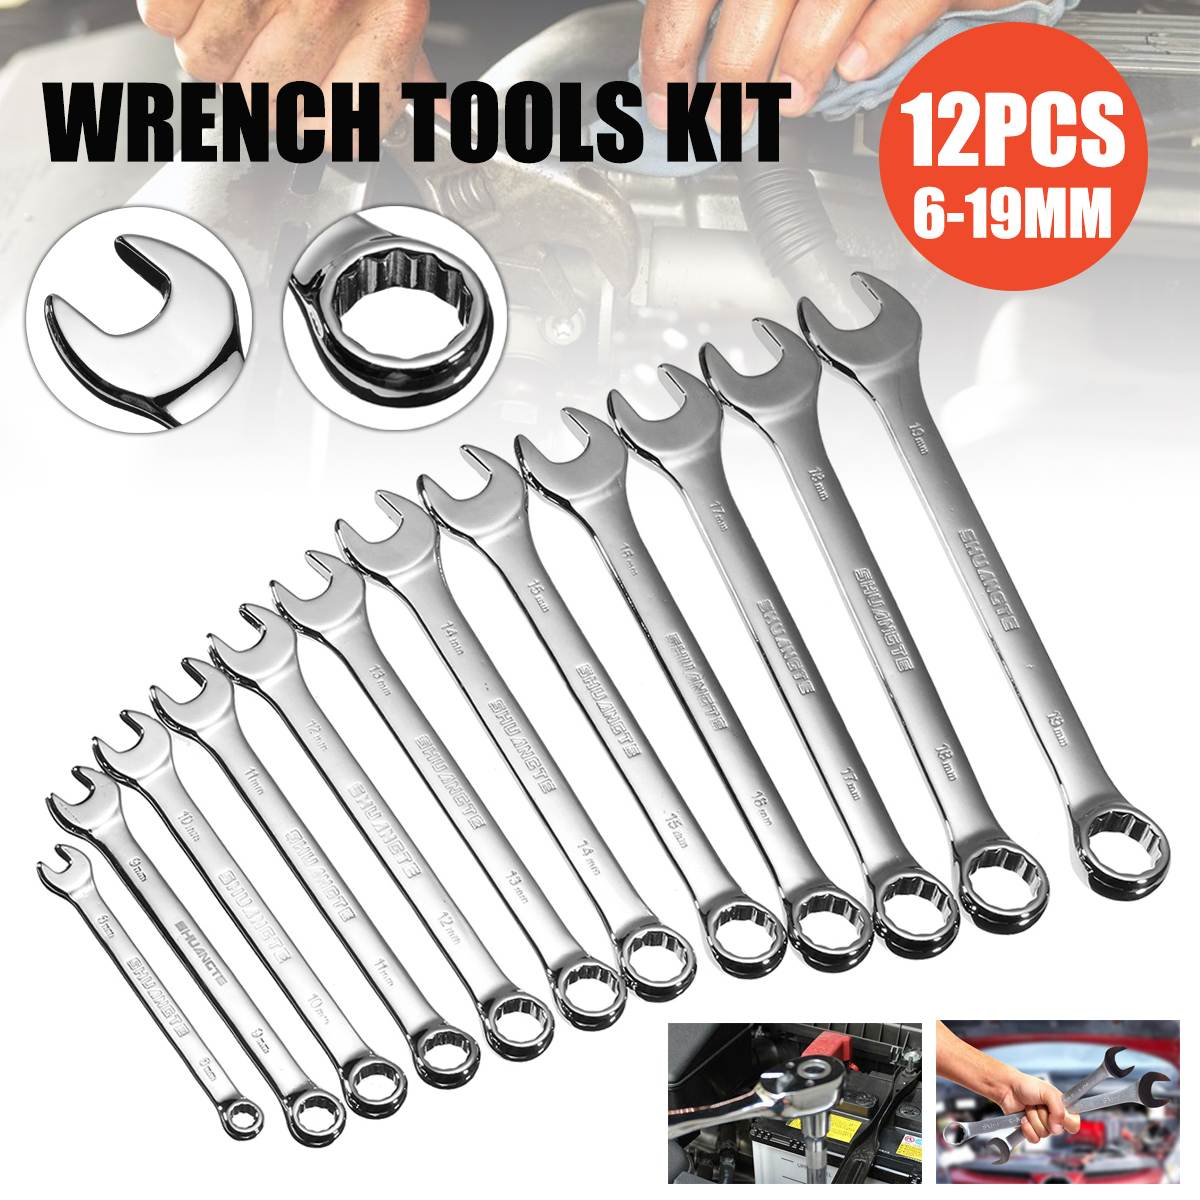 12Pcs/Set 6-19mm Chrome Vanadium Steel Ratchet Wrench Tool For Repairing Car Key Wrench Hand Tool Kit For Car Torque Wrench